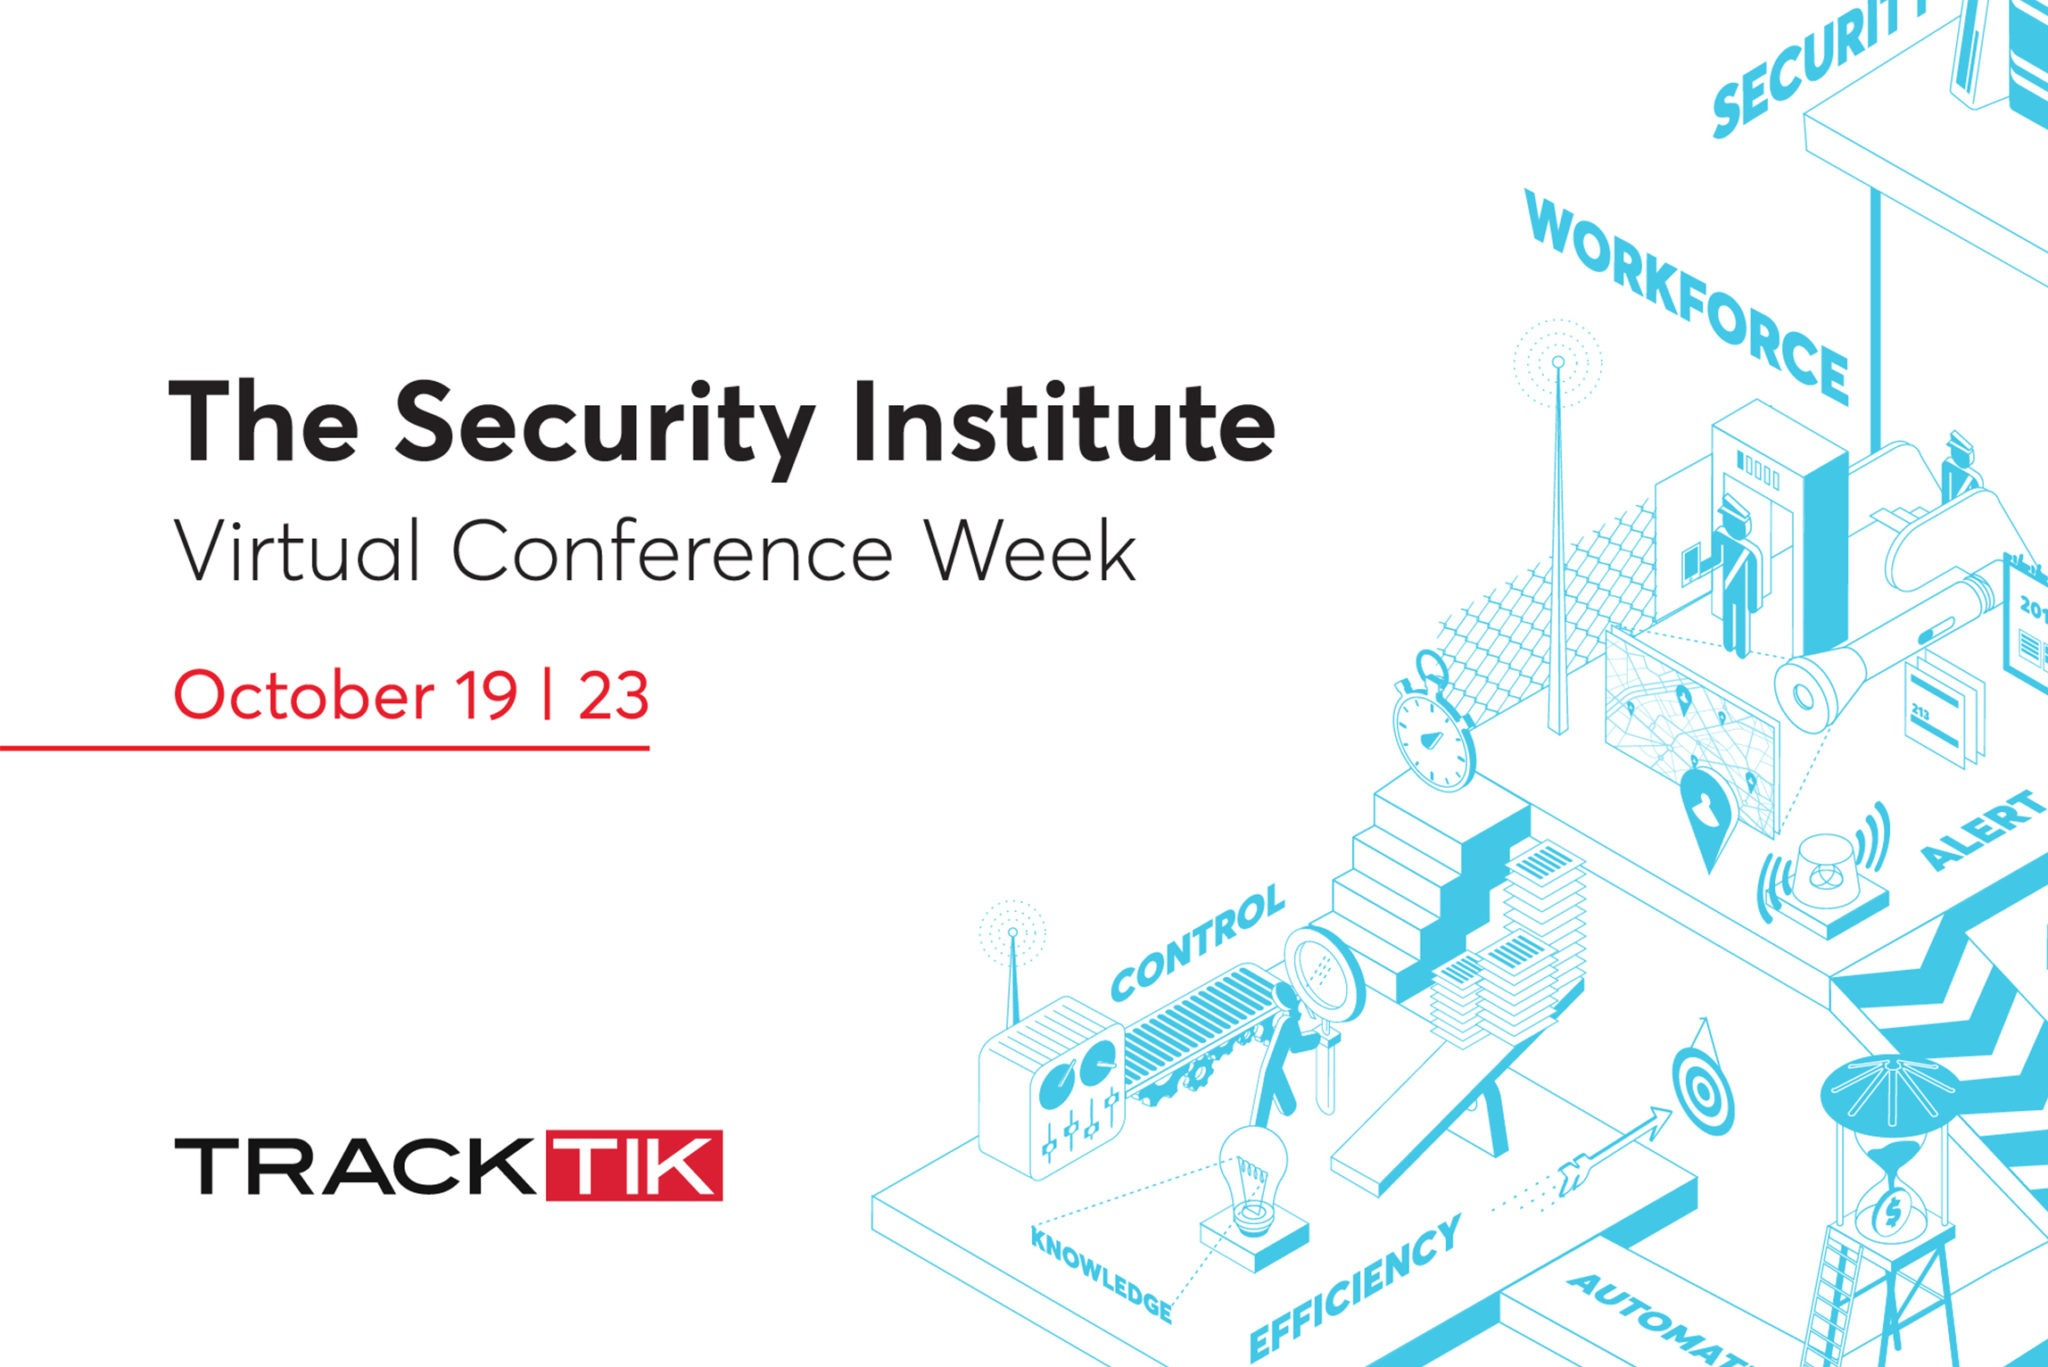 The Security Institute Annual Conference